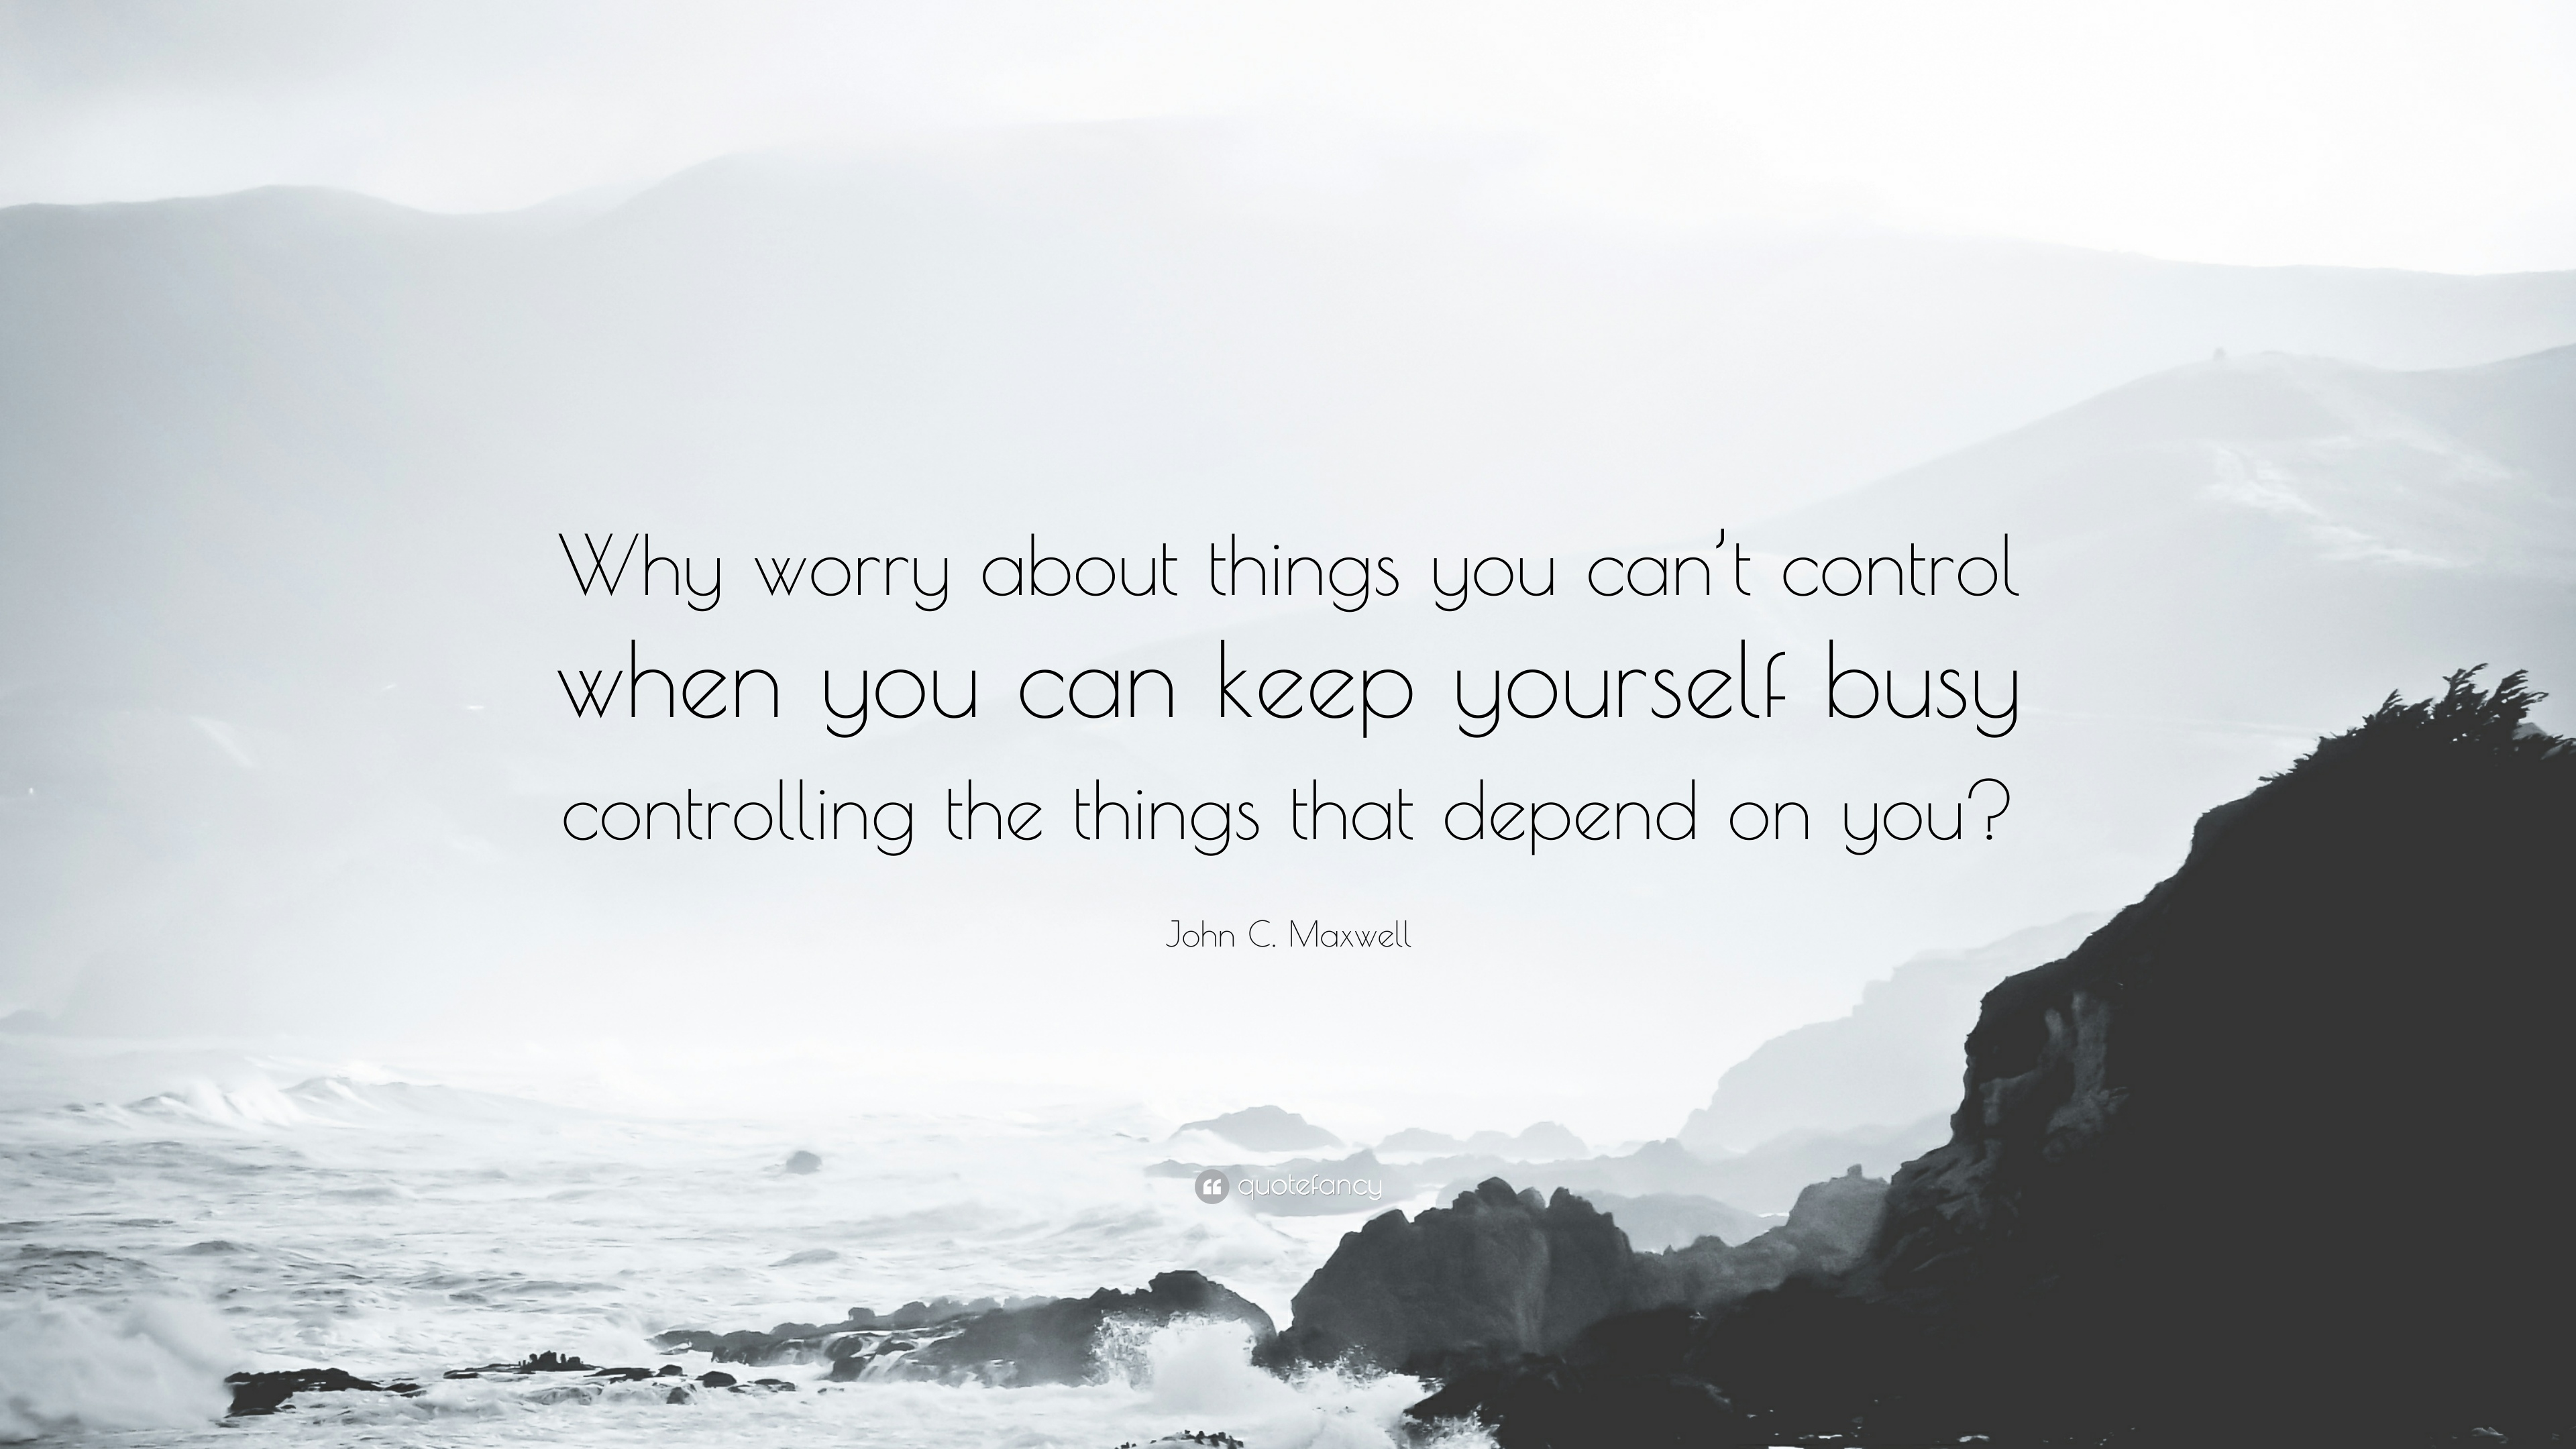 John C Maxwell Quote Why Worry About Things You Cant Control